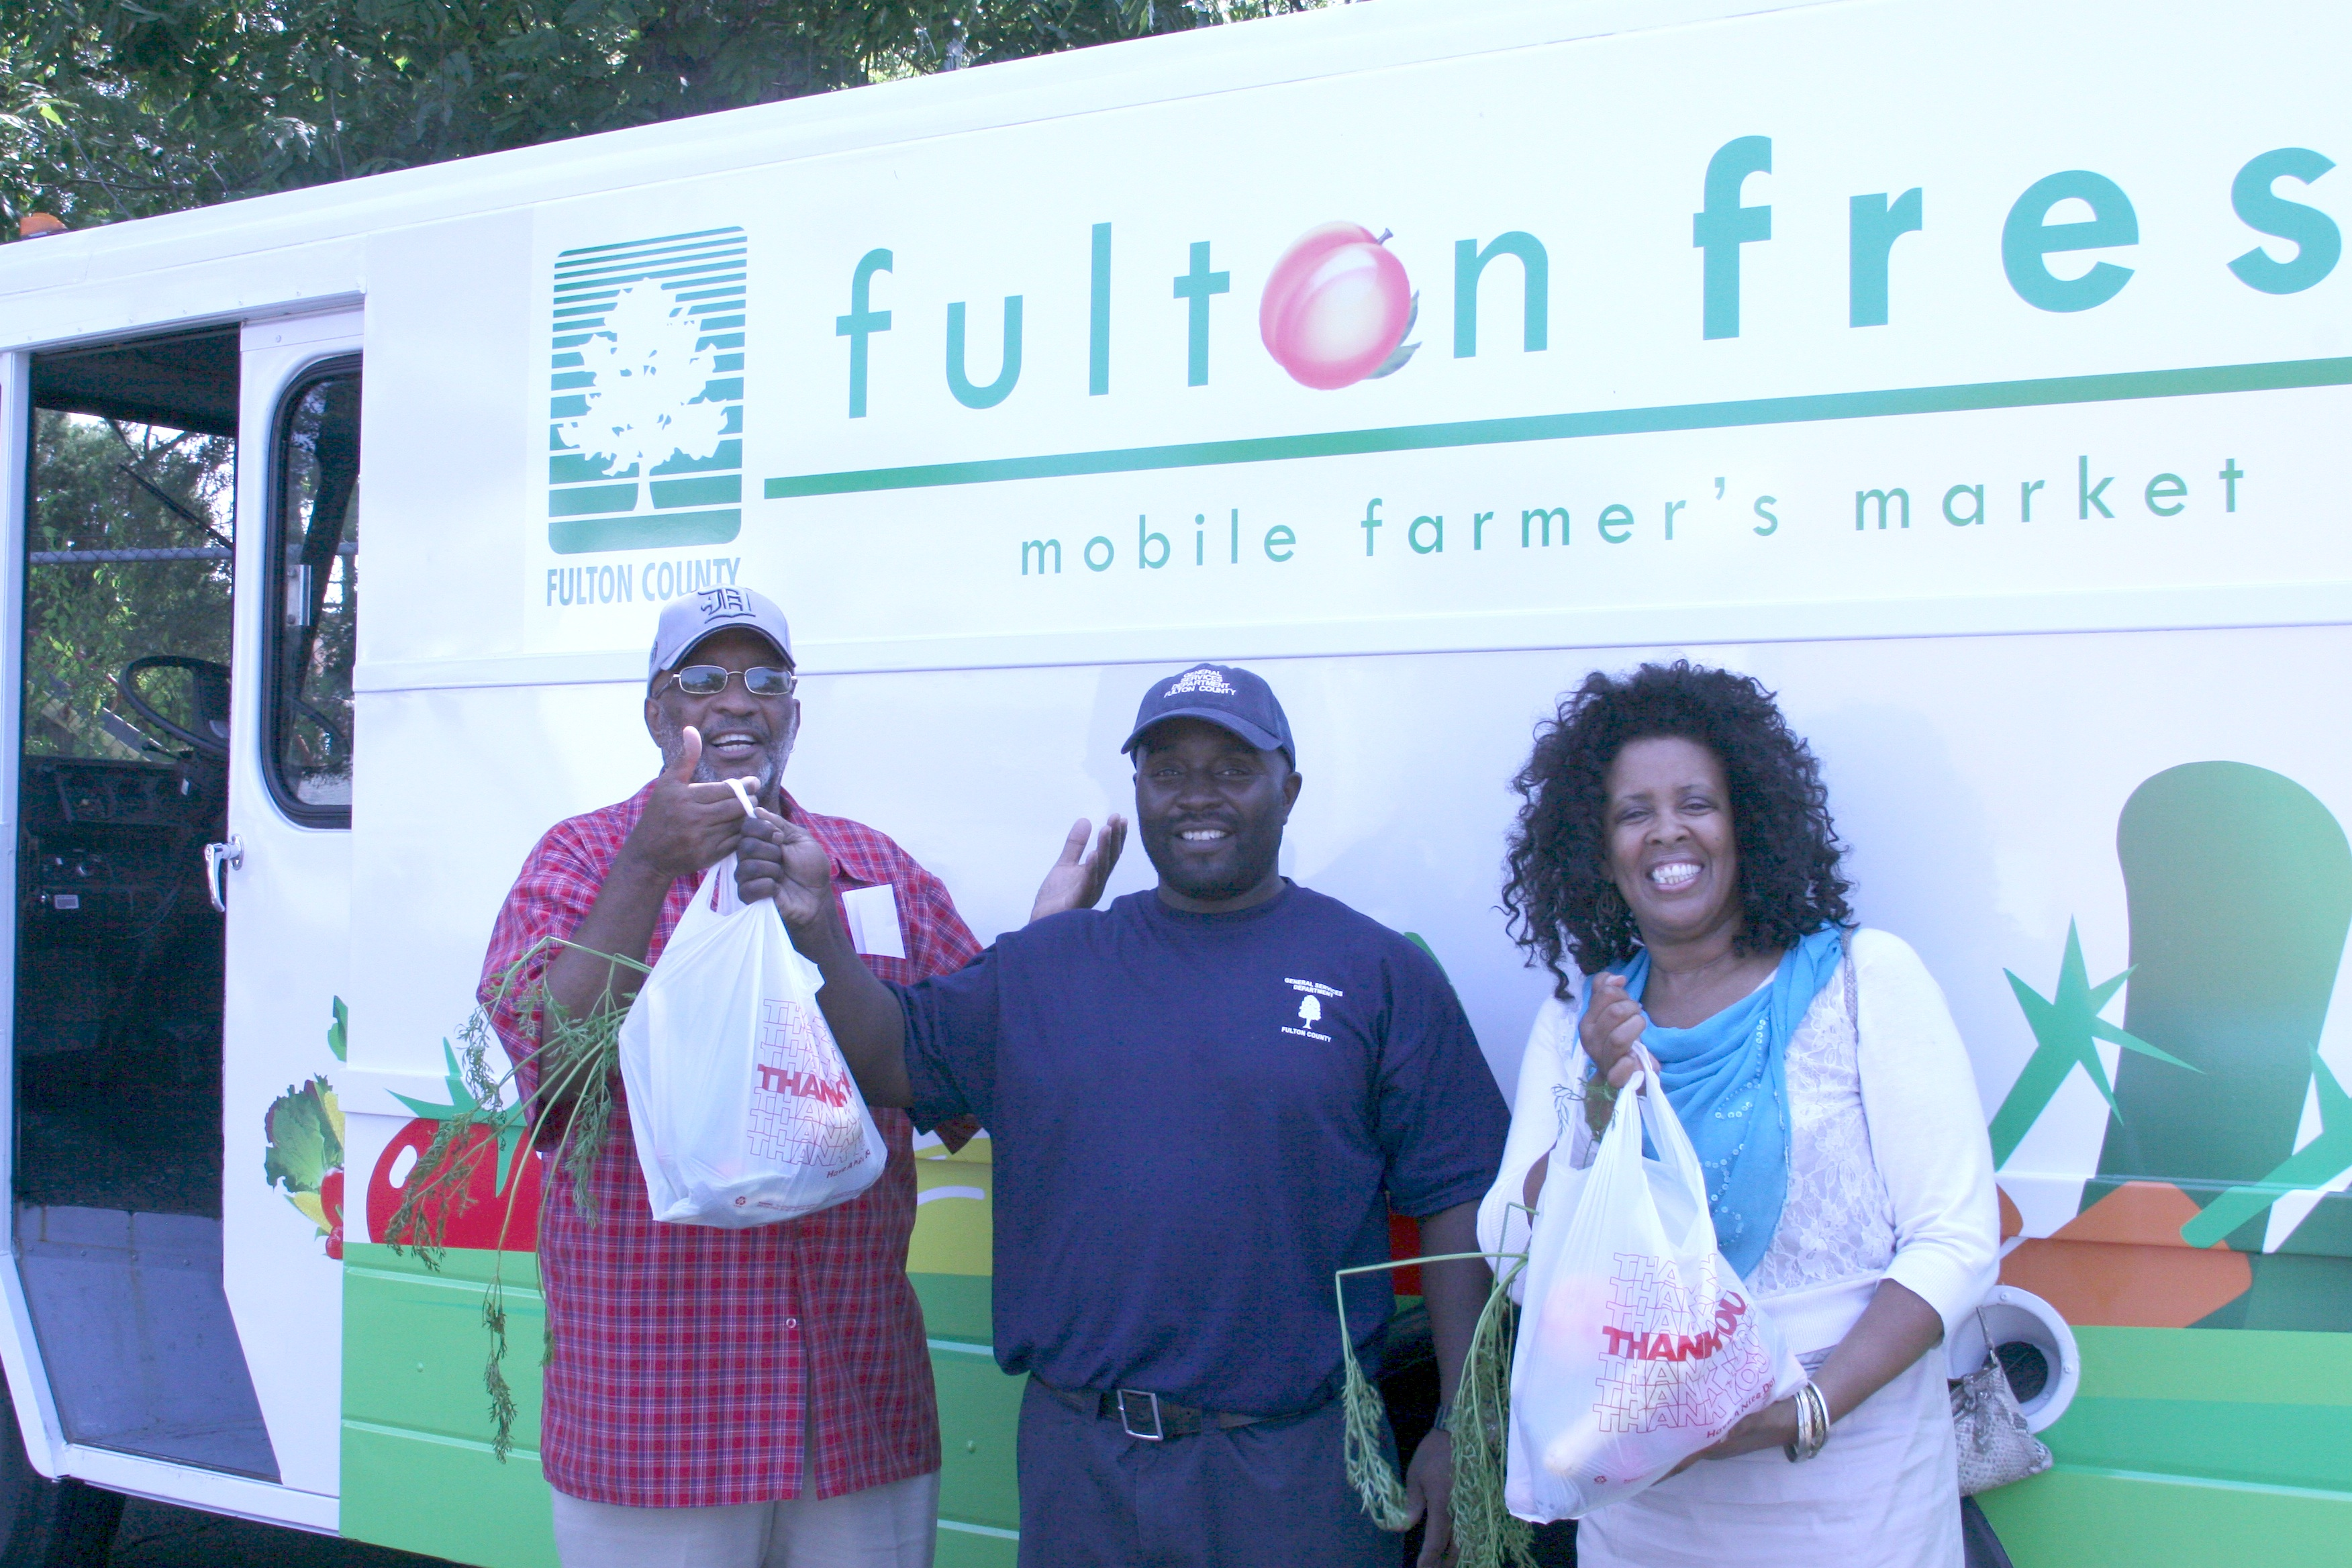 Fulton County employee Eric Johnson (center) hands free vegetables to Fulton County residents at a recent session of the Fulton Fresh Mobile Farmer's Market.